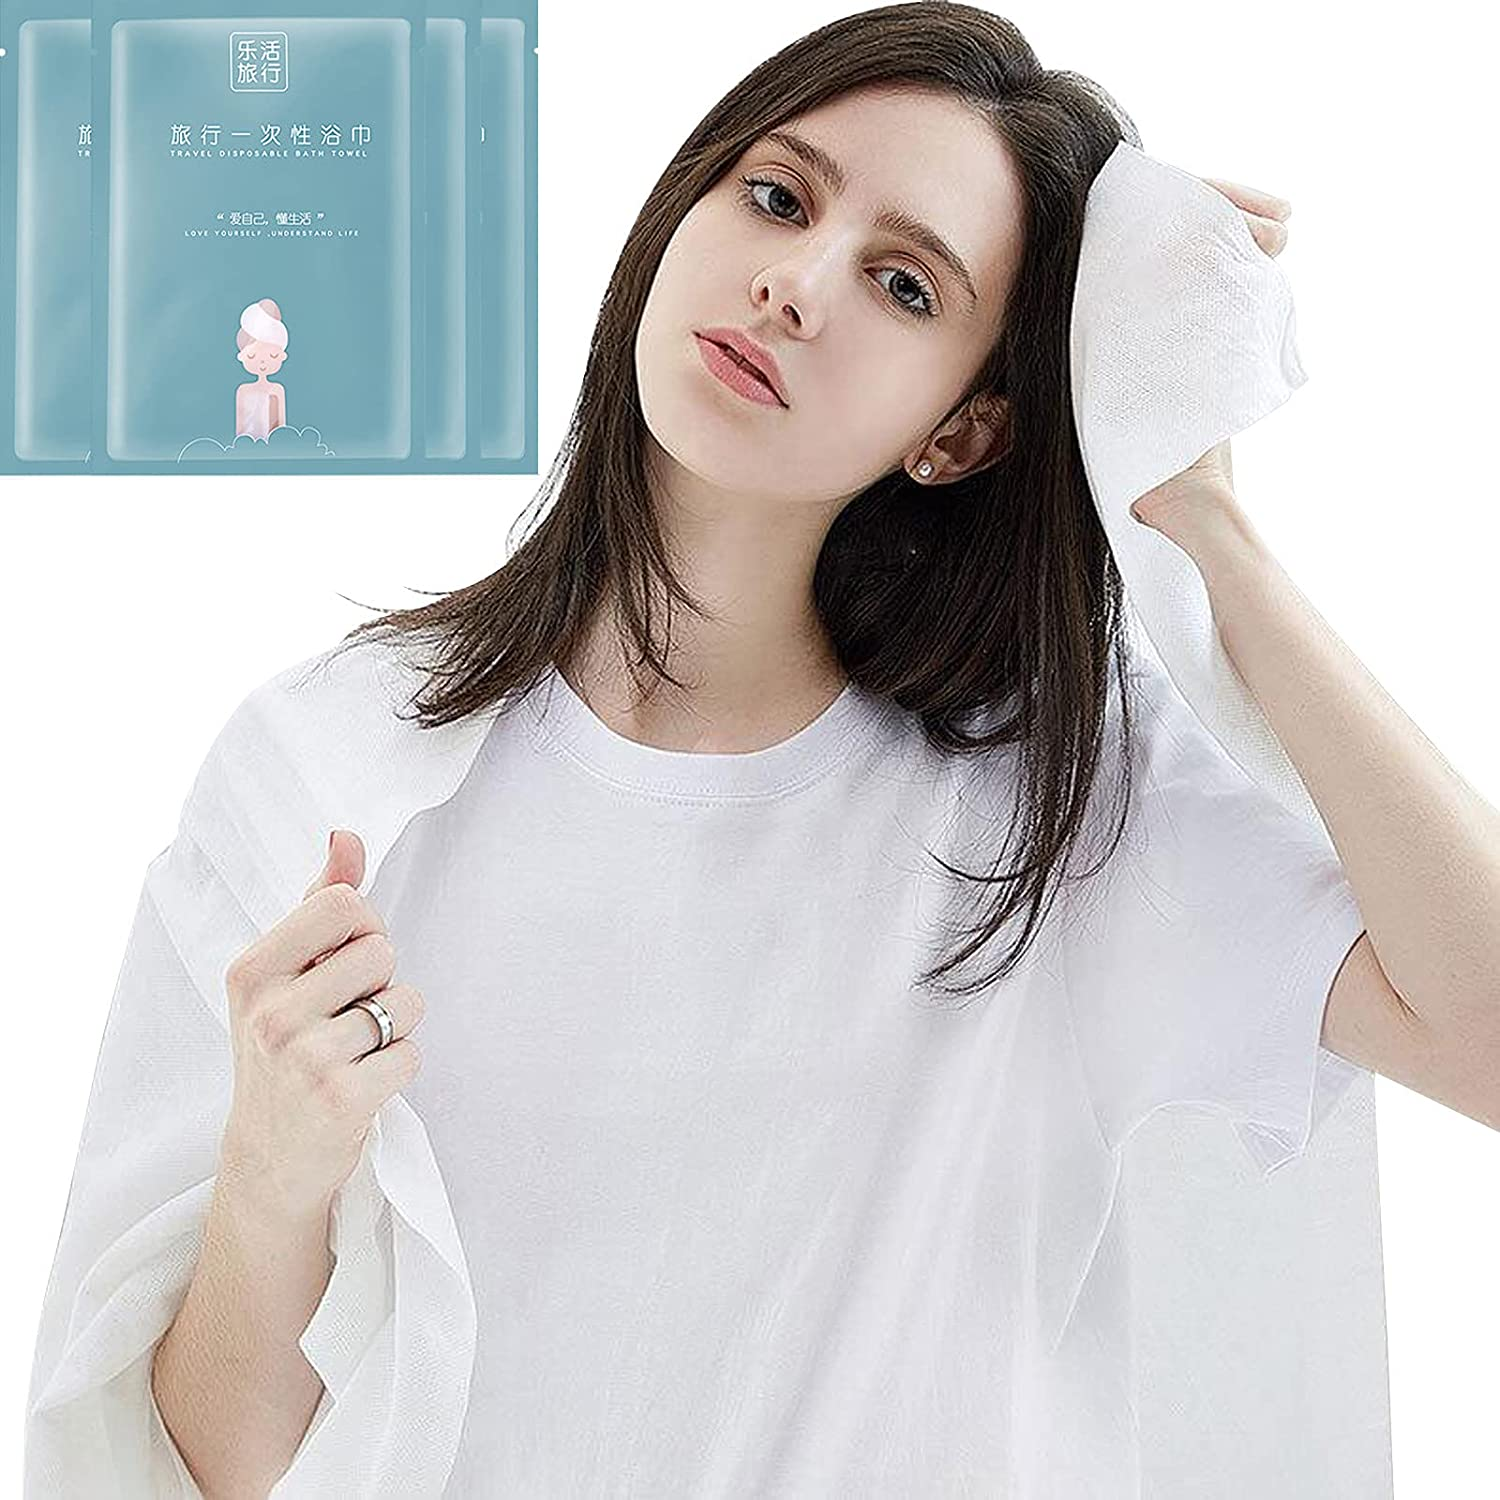 6 Packs of Portable Travel Pure Cotton Disposable White Soft Bath Towels, Suitable for Camping, Travel, Hotel, Business Travel (55 x 25.5 inches).